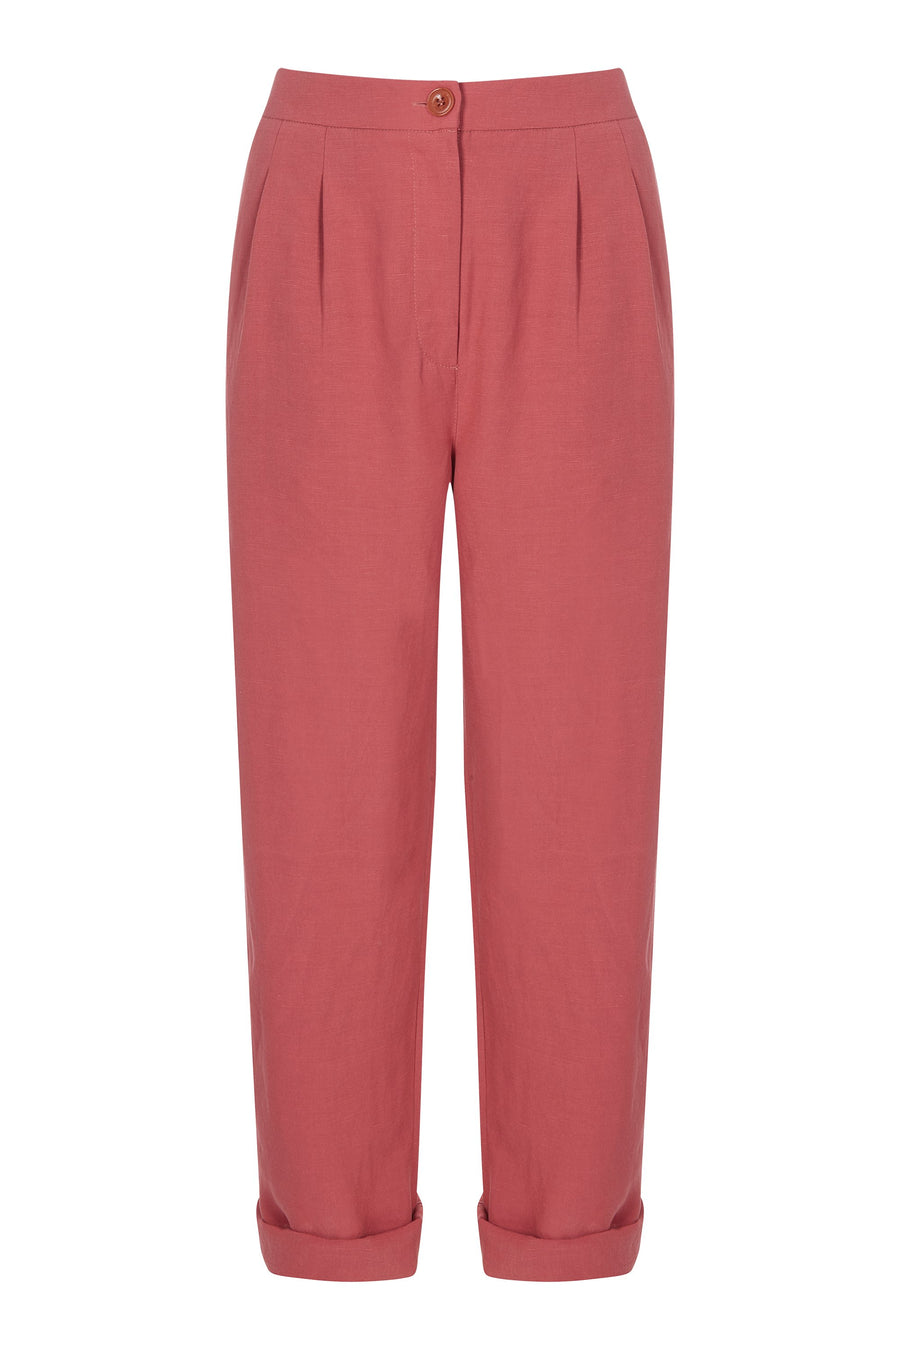 Juna Tencel Trousers Rust - Issara Fairtrade